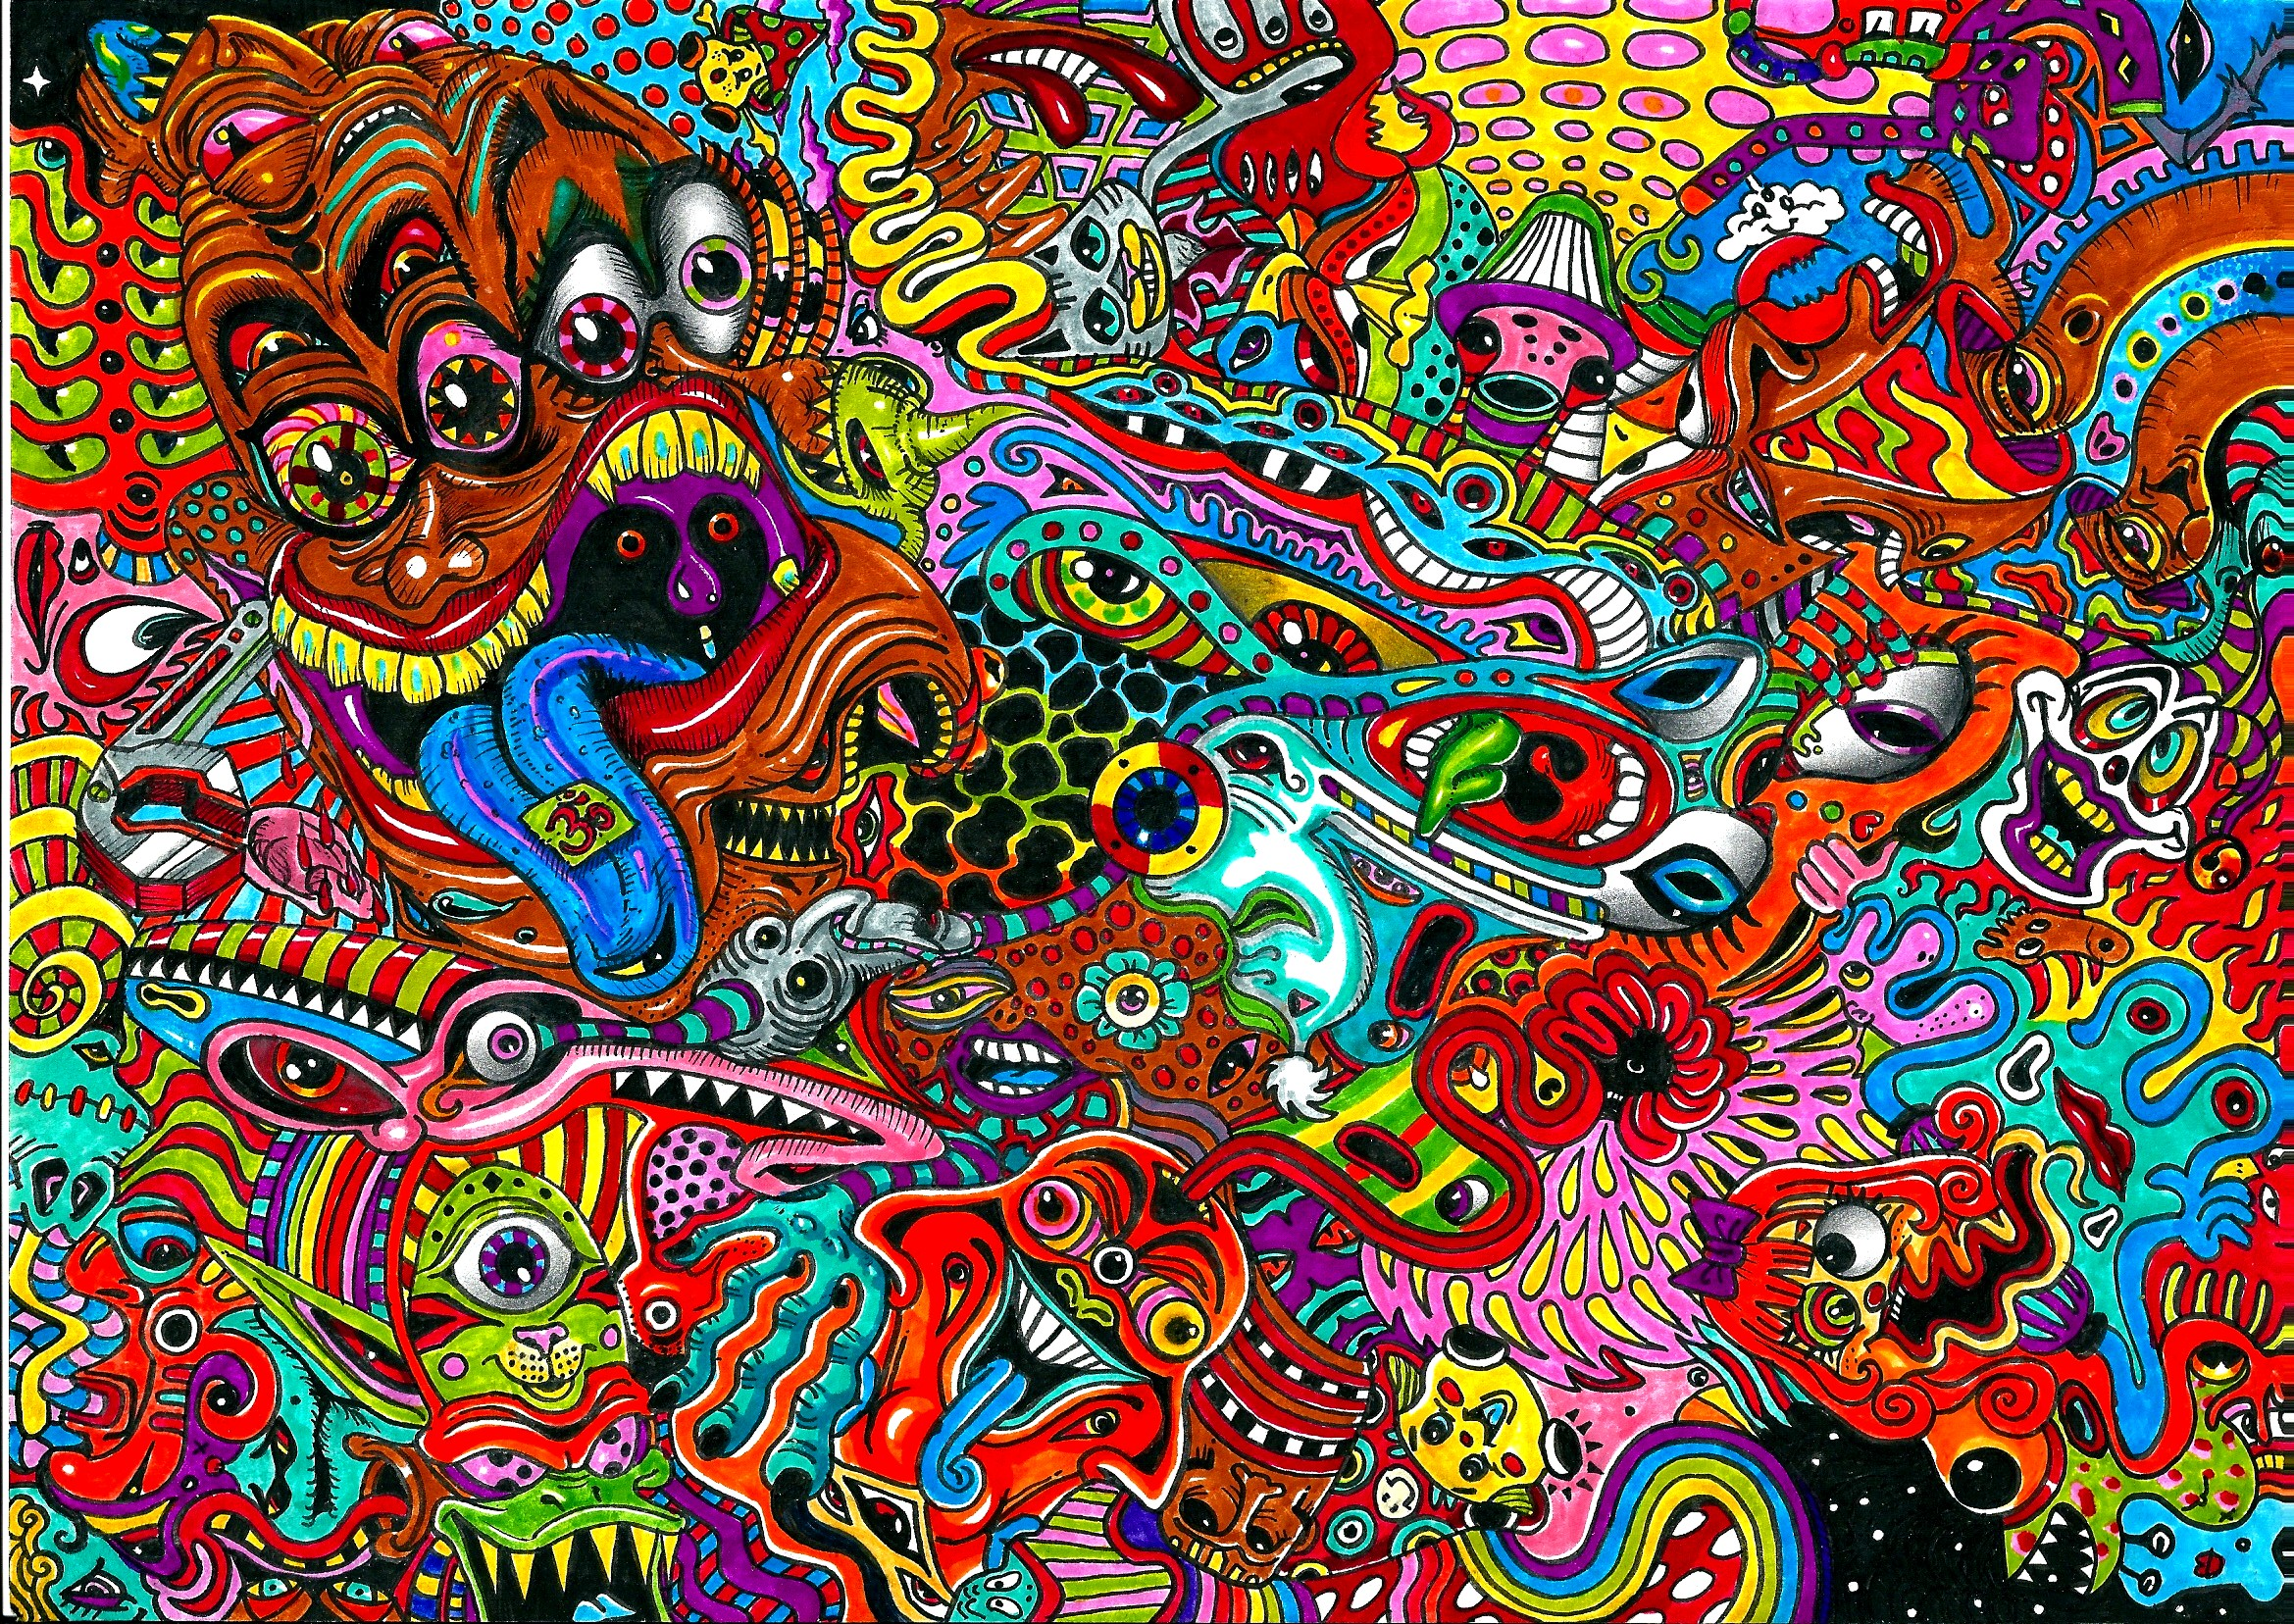 Description color box 3d creative design theme desktop picture - Psychedelic Mess By Acid Flo On Deviantart